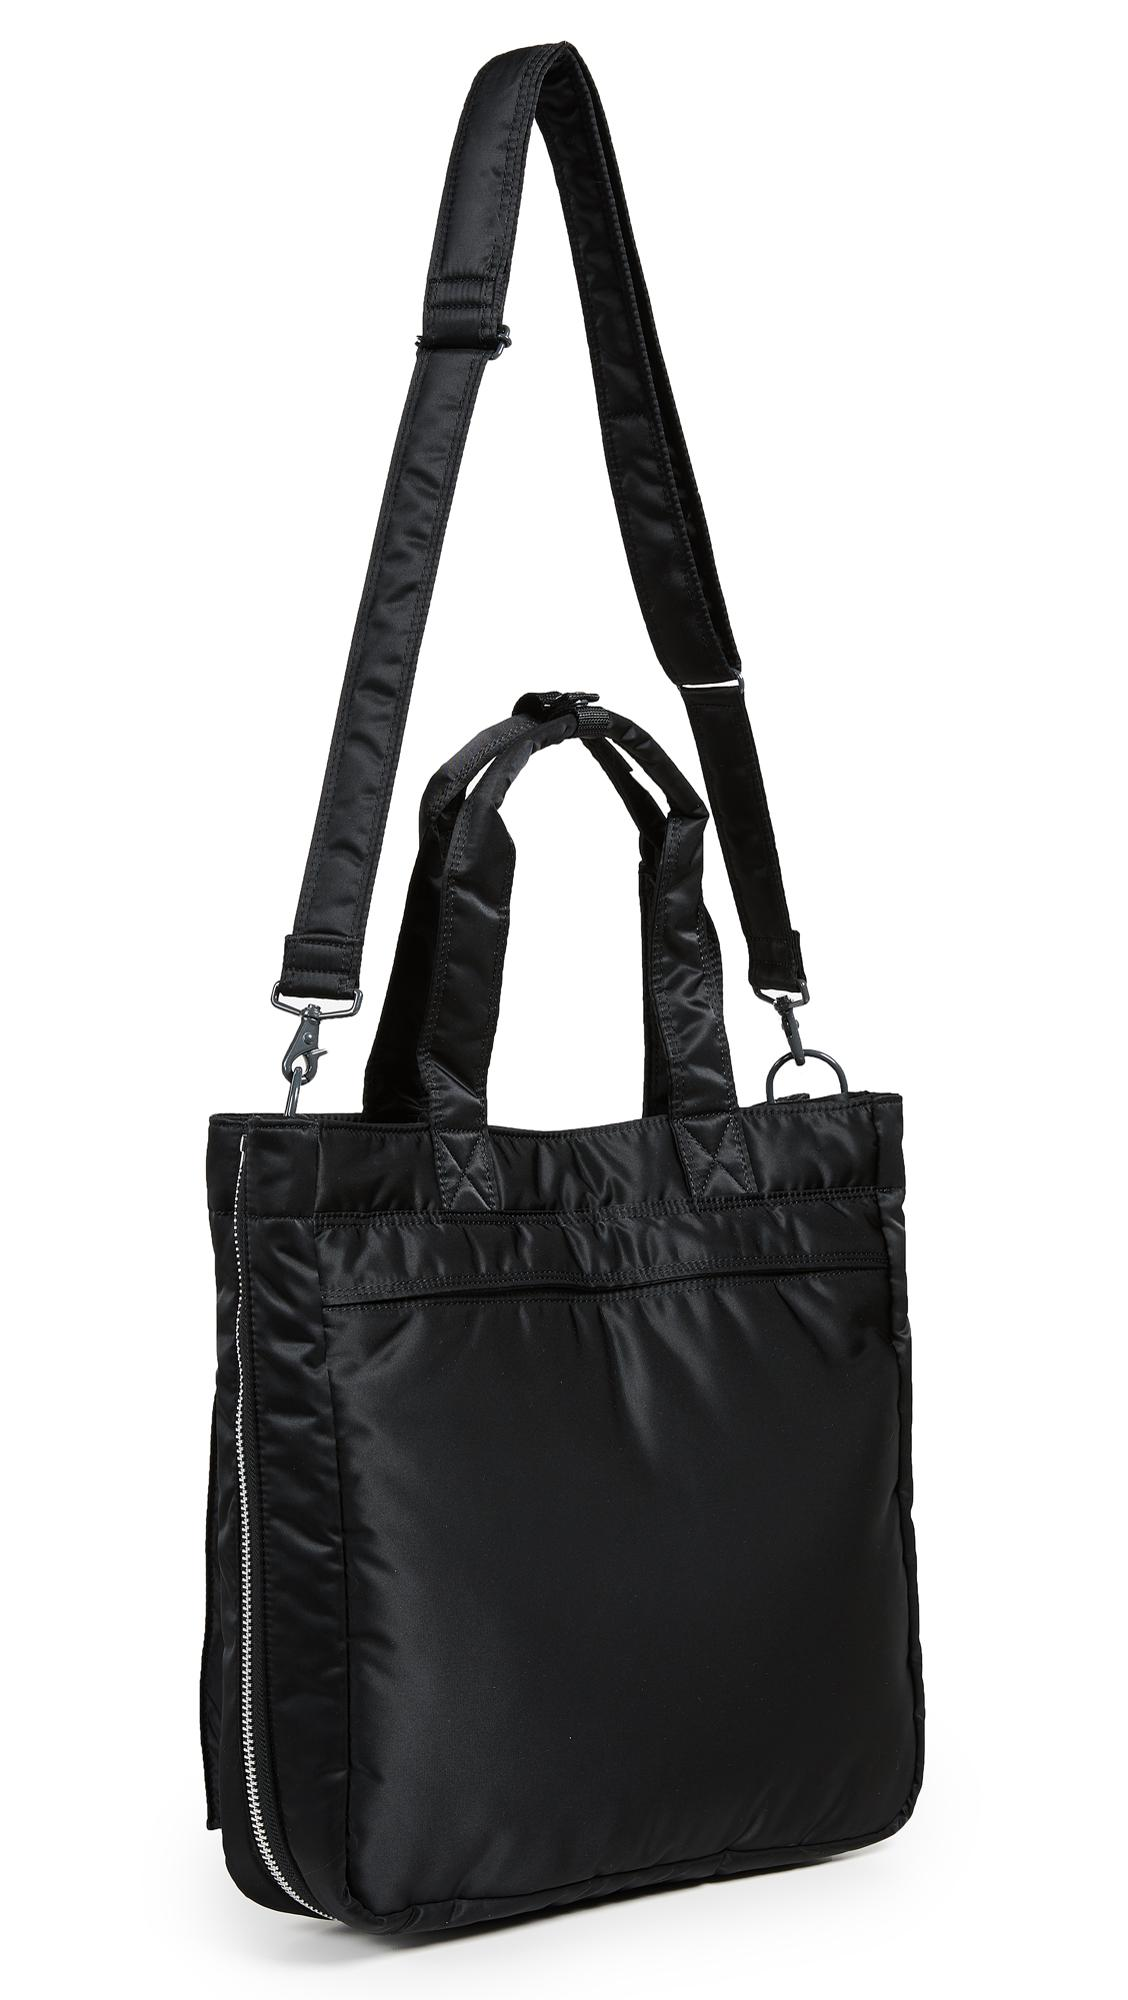 Porter Tanker Tote Bag in Black for Men